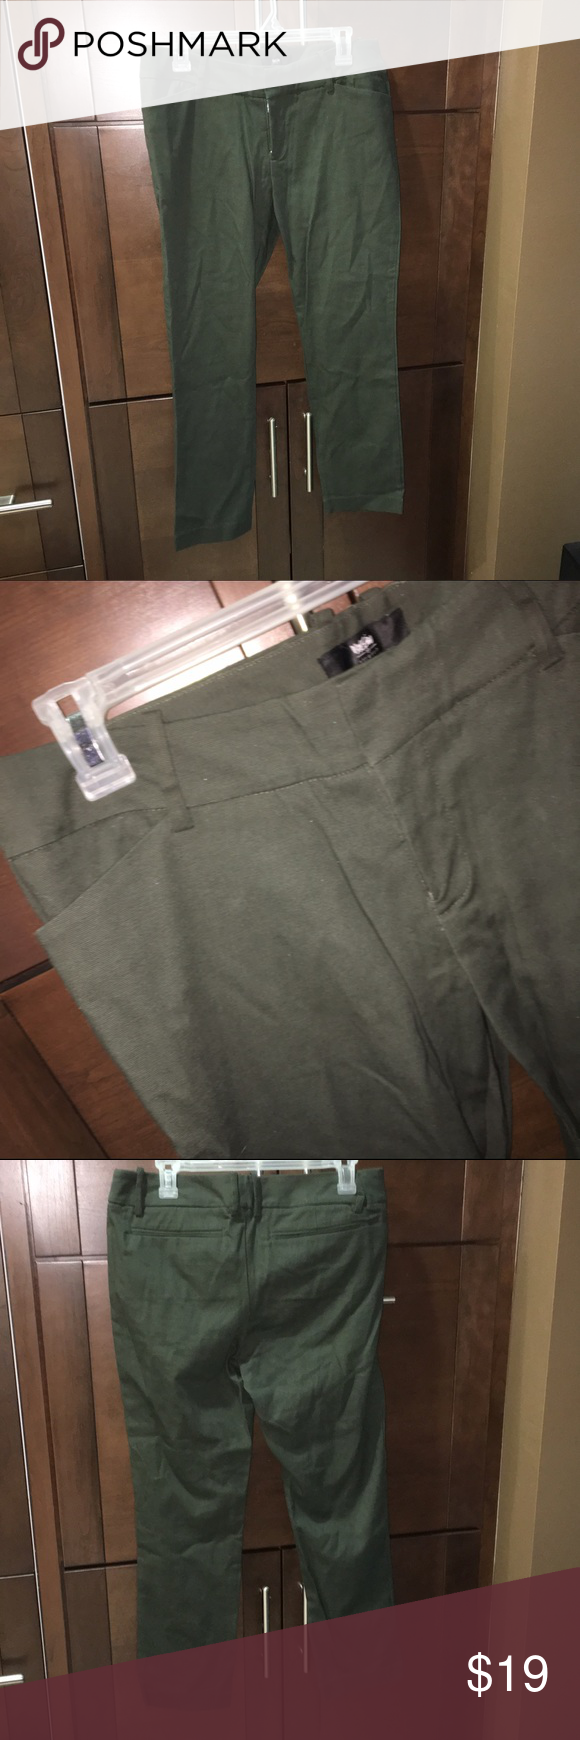 "Skinny ankle pants I don't think I've ever worn these but no tags. Pretty army green color. 97% cotton, 3% spandex. Zipper fly front with waistband hooks, flat front. 27"" inseam. 13"" leg opening at bottom. Mossimo Pants Ankle & Cropped"